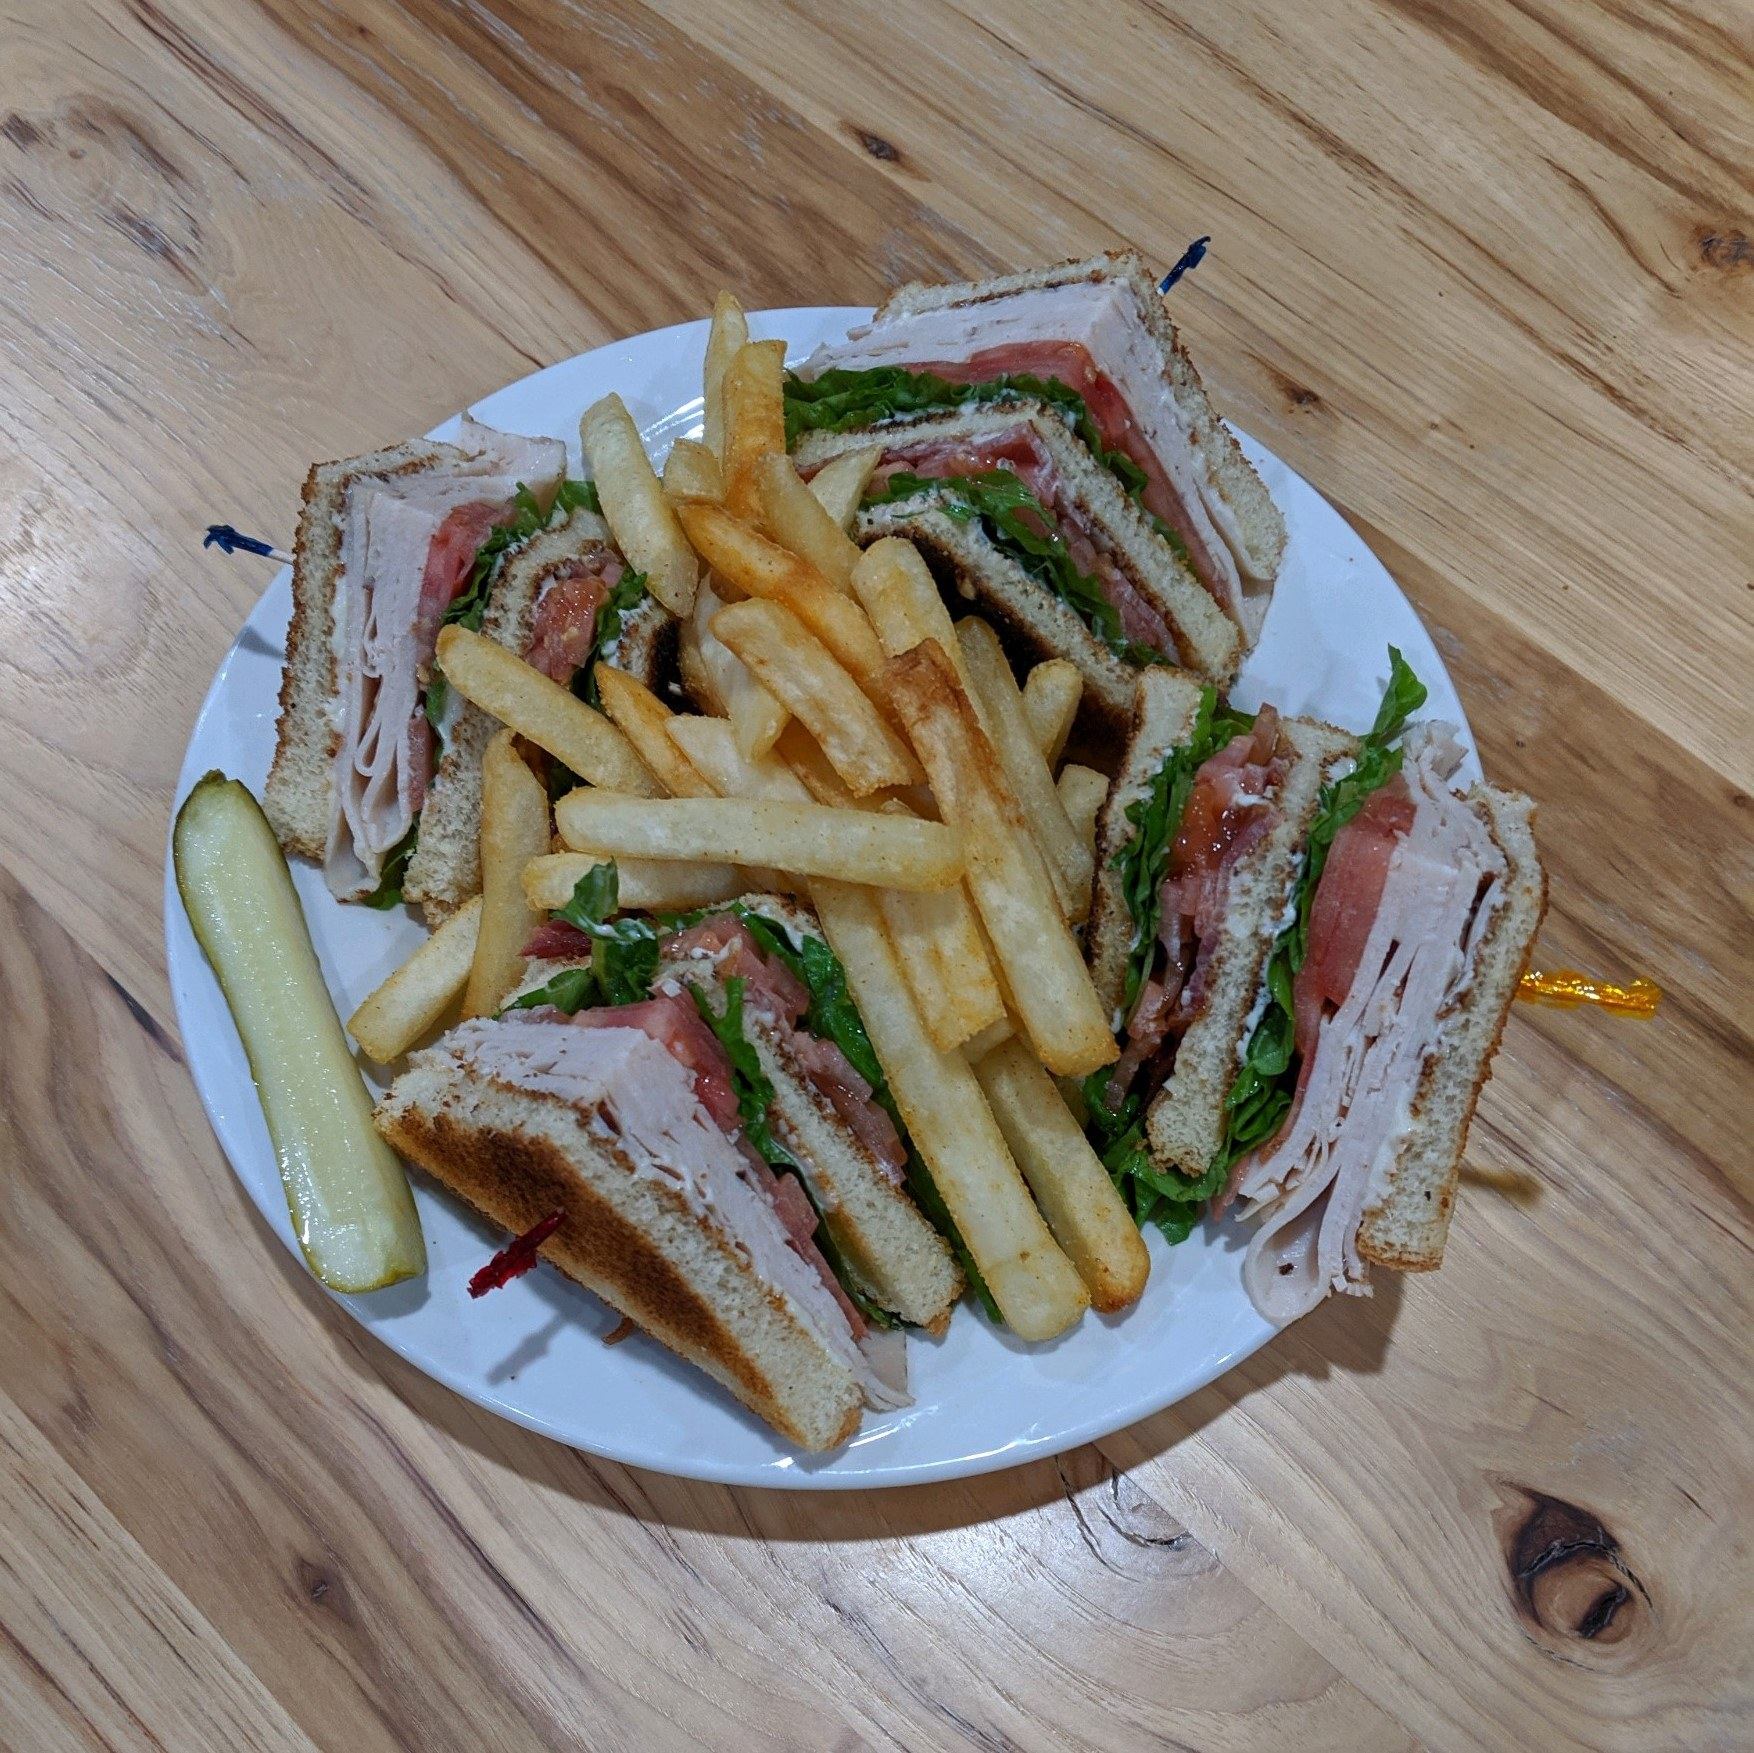 Sqaure Turkey Club